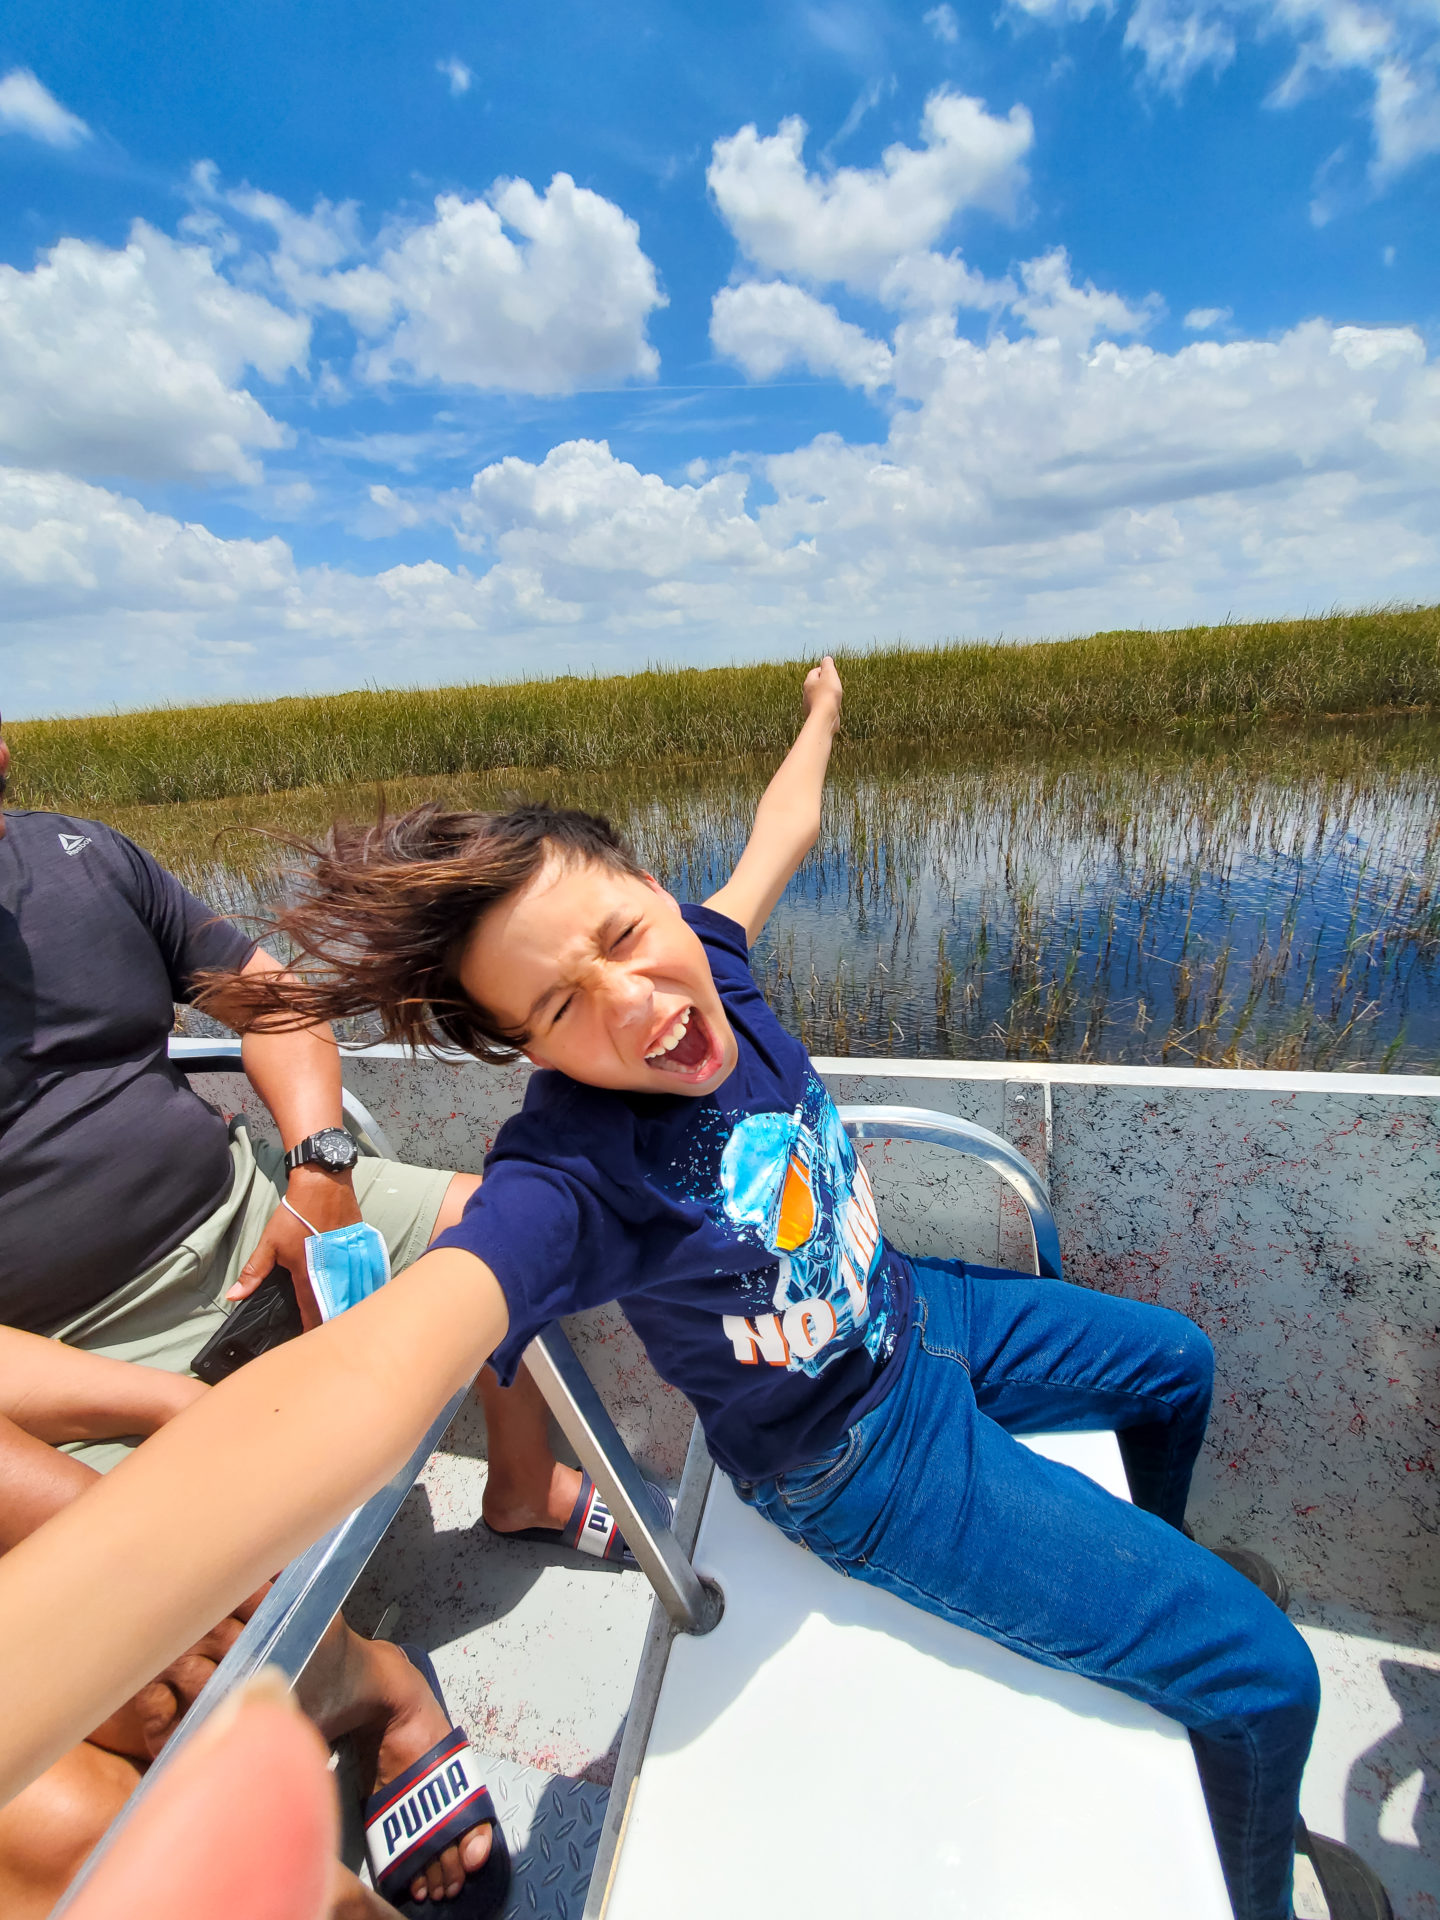 Christopher Being Happy at the Everglades. He is smiling and extending his arms.